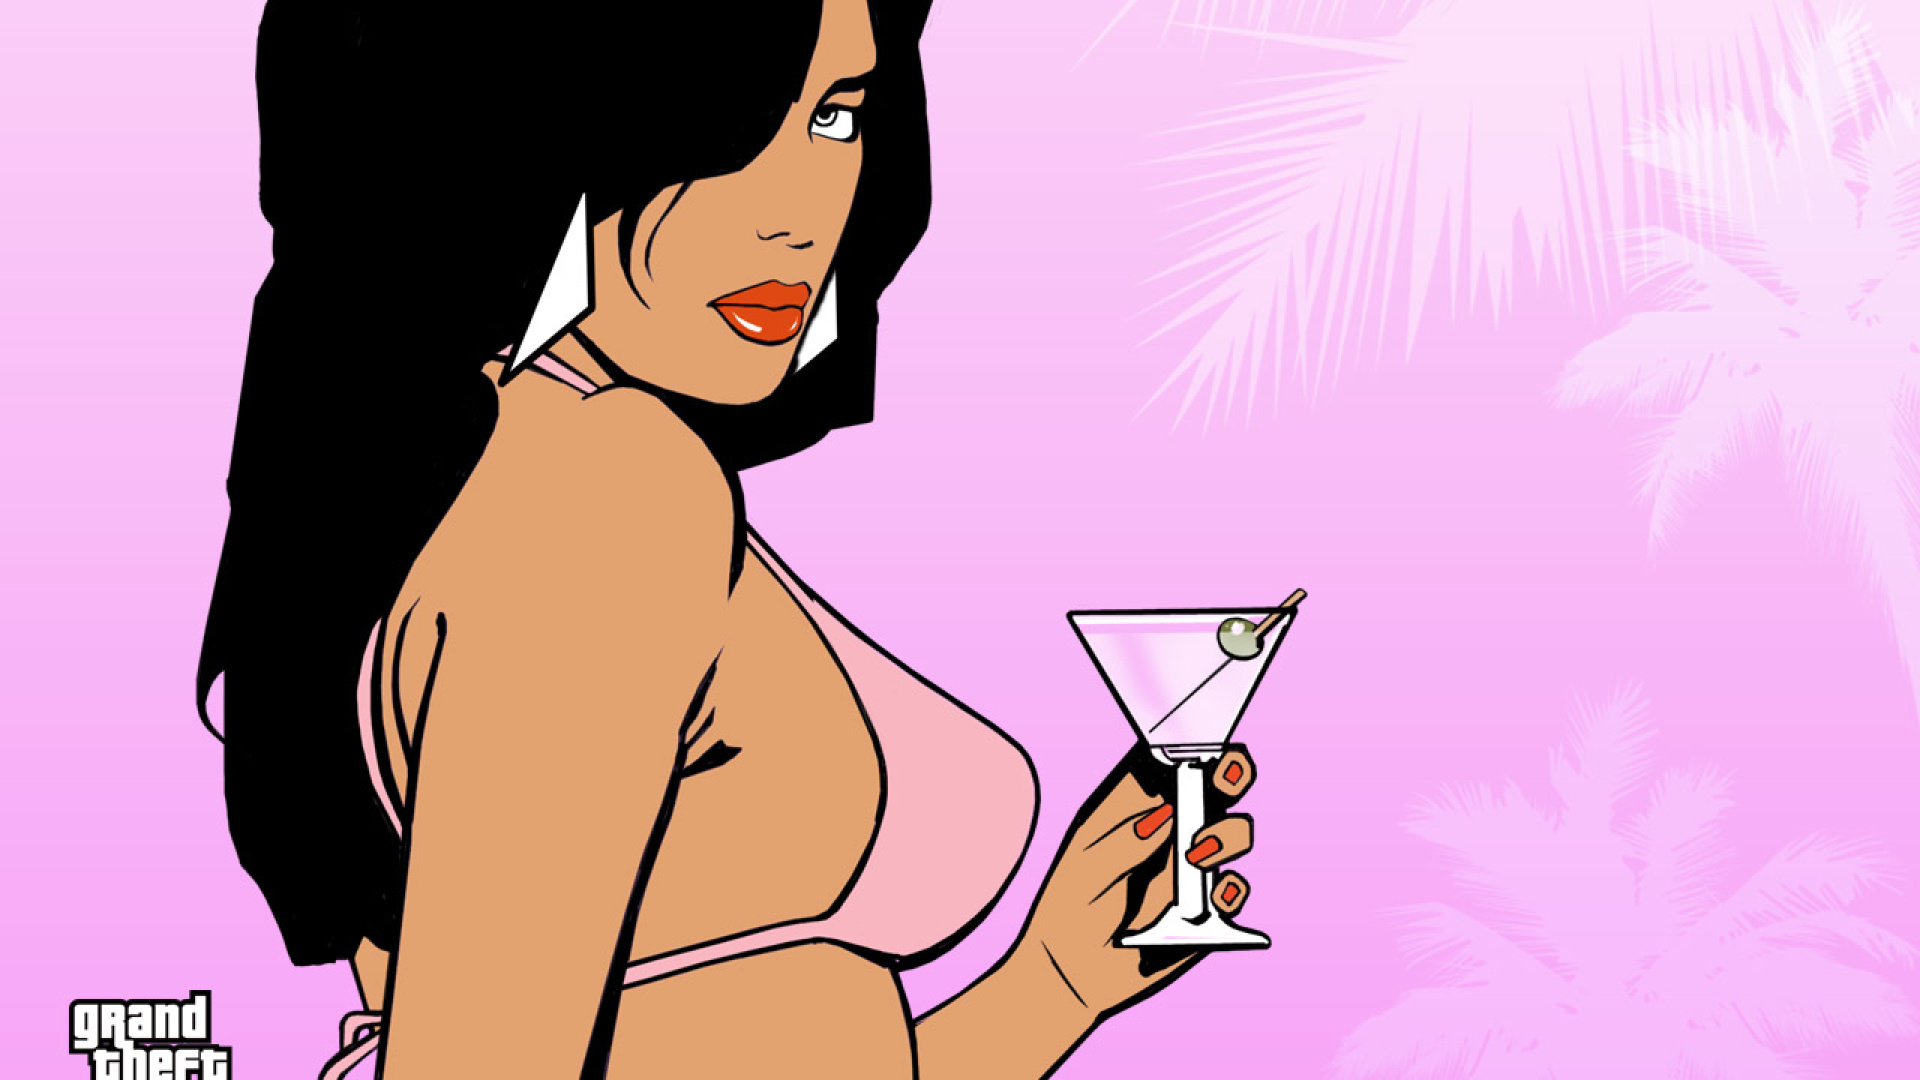 Vice city porn xxx pic adult photos